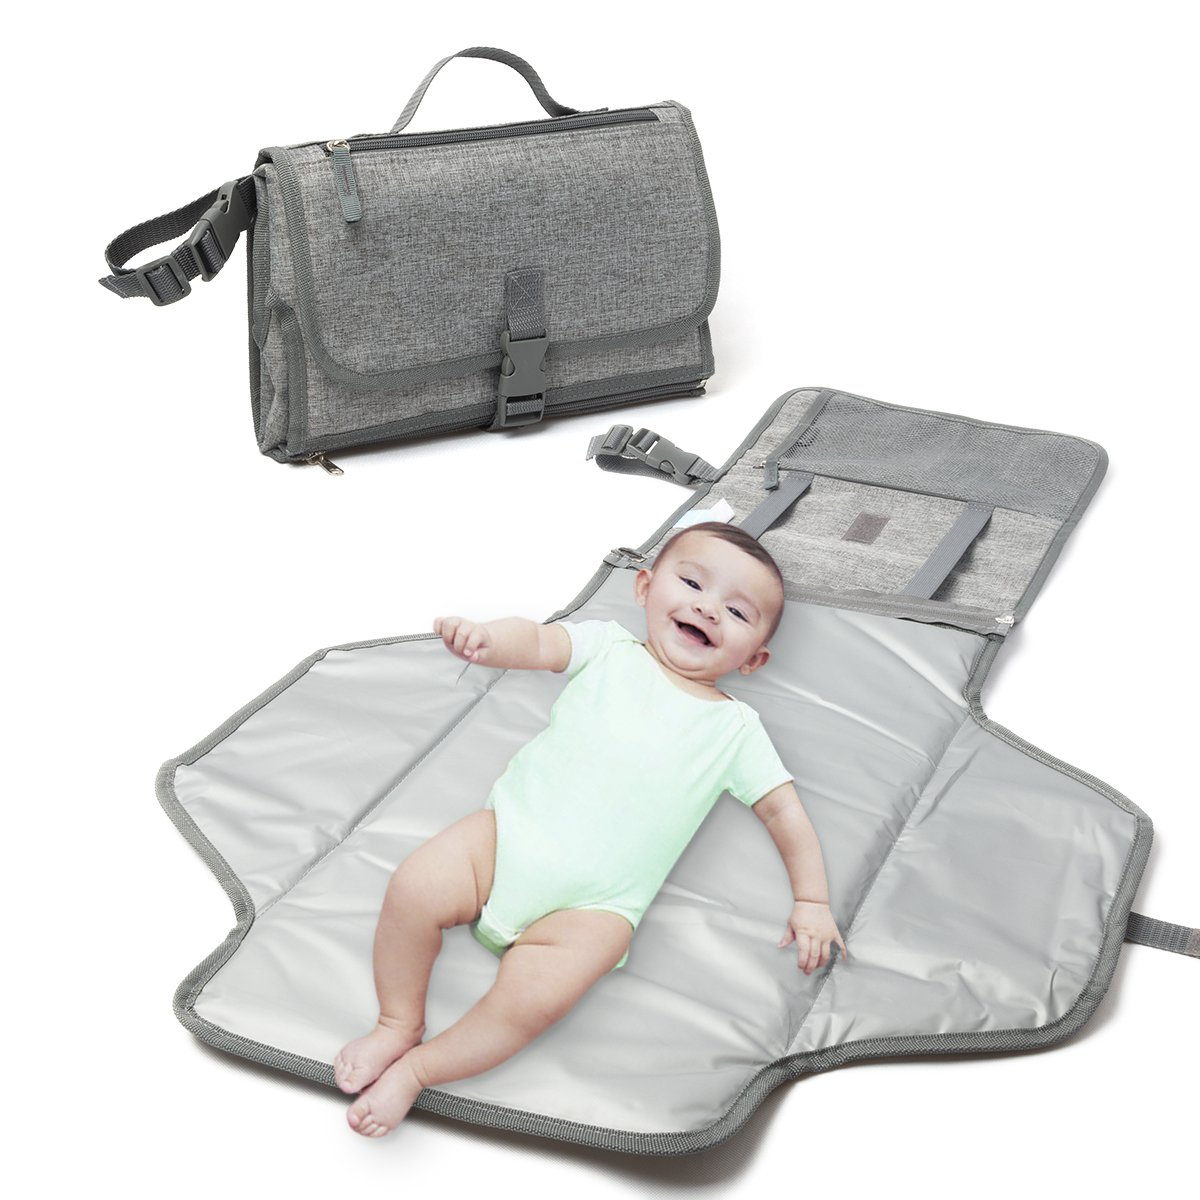 Changing Pad - Baby Changing Mat, Portable Travel Changer Station, Waterproof Diaper Pad, Diaper Pouch, Folding Diaper Clutch, Travel Kit for Baby, Small Detachable Wipeable mat with Pockets(Chevron) IBMC